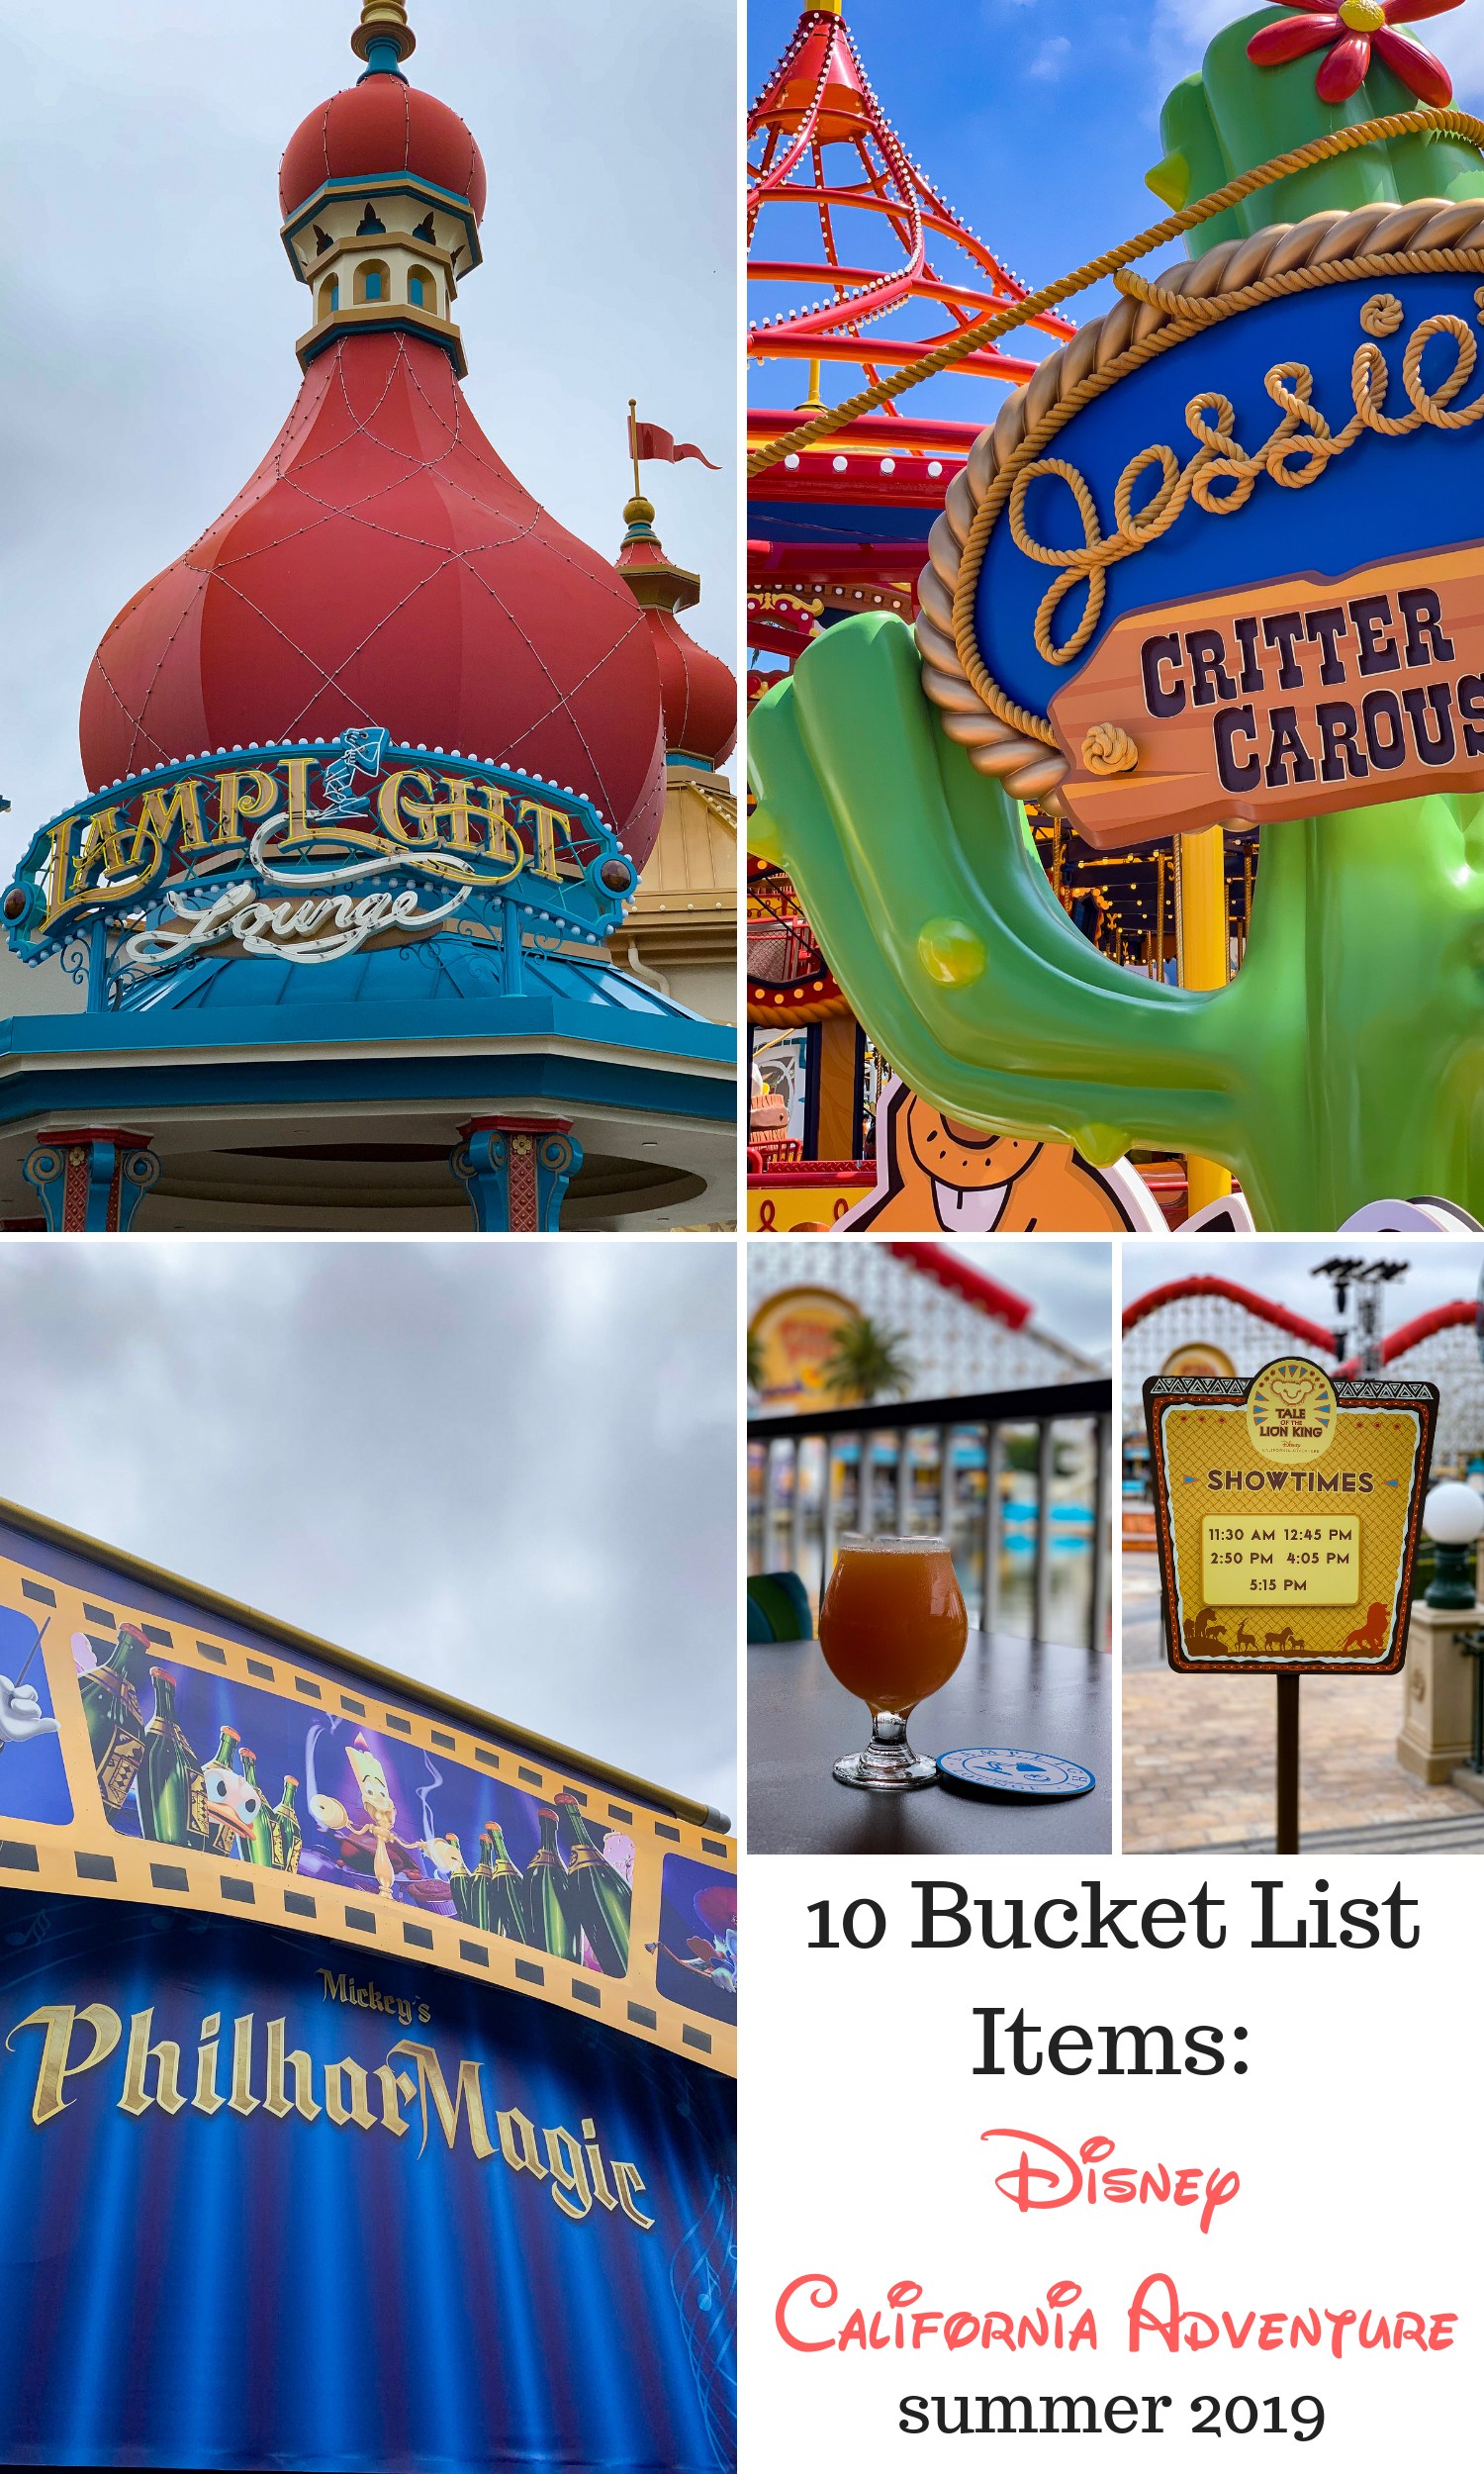 Heading to Disney California Adventure this summer? These are 10 don't miss activities!